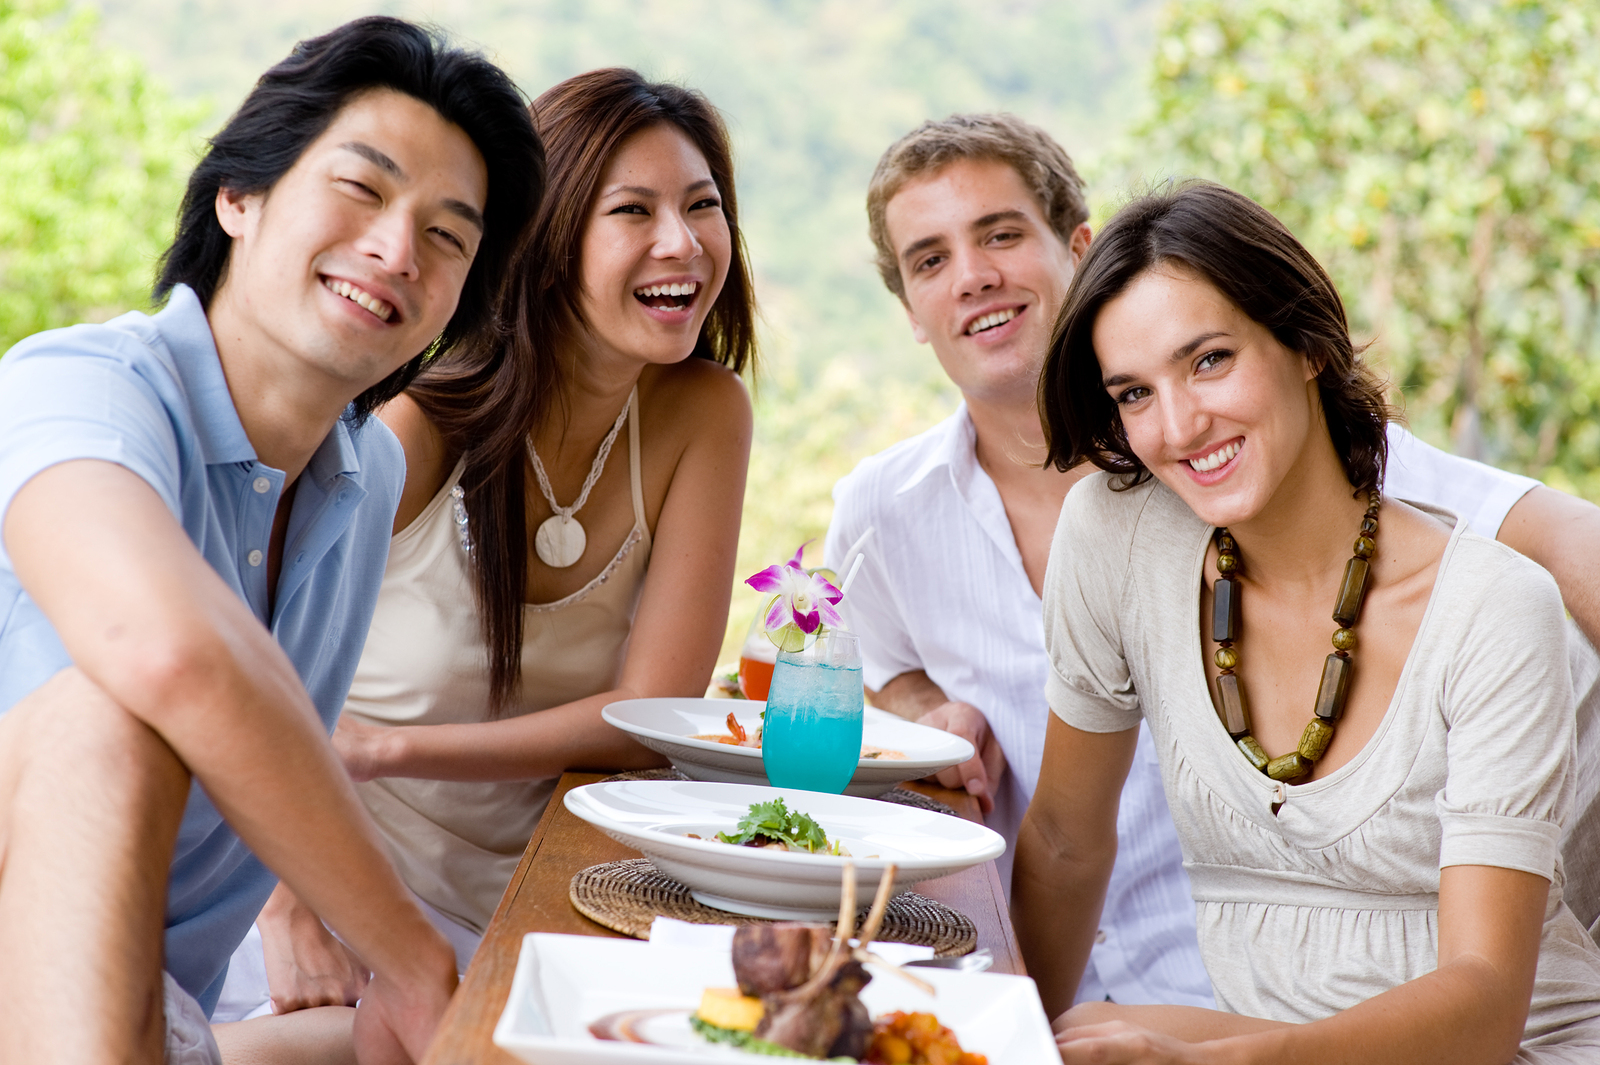 free online personals in big prairie Sparkcom makes online dating easy and fun it's free to search, flirt, read and respond to all emails we offer lots of fun tools to help you find and communicate with singles in your area.